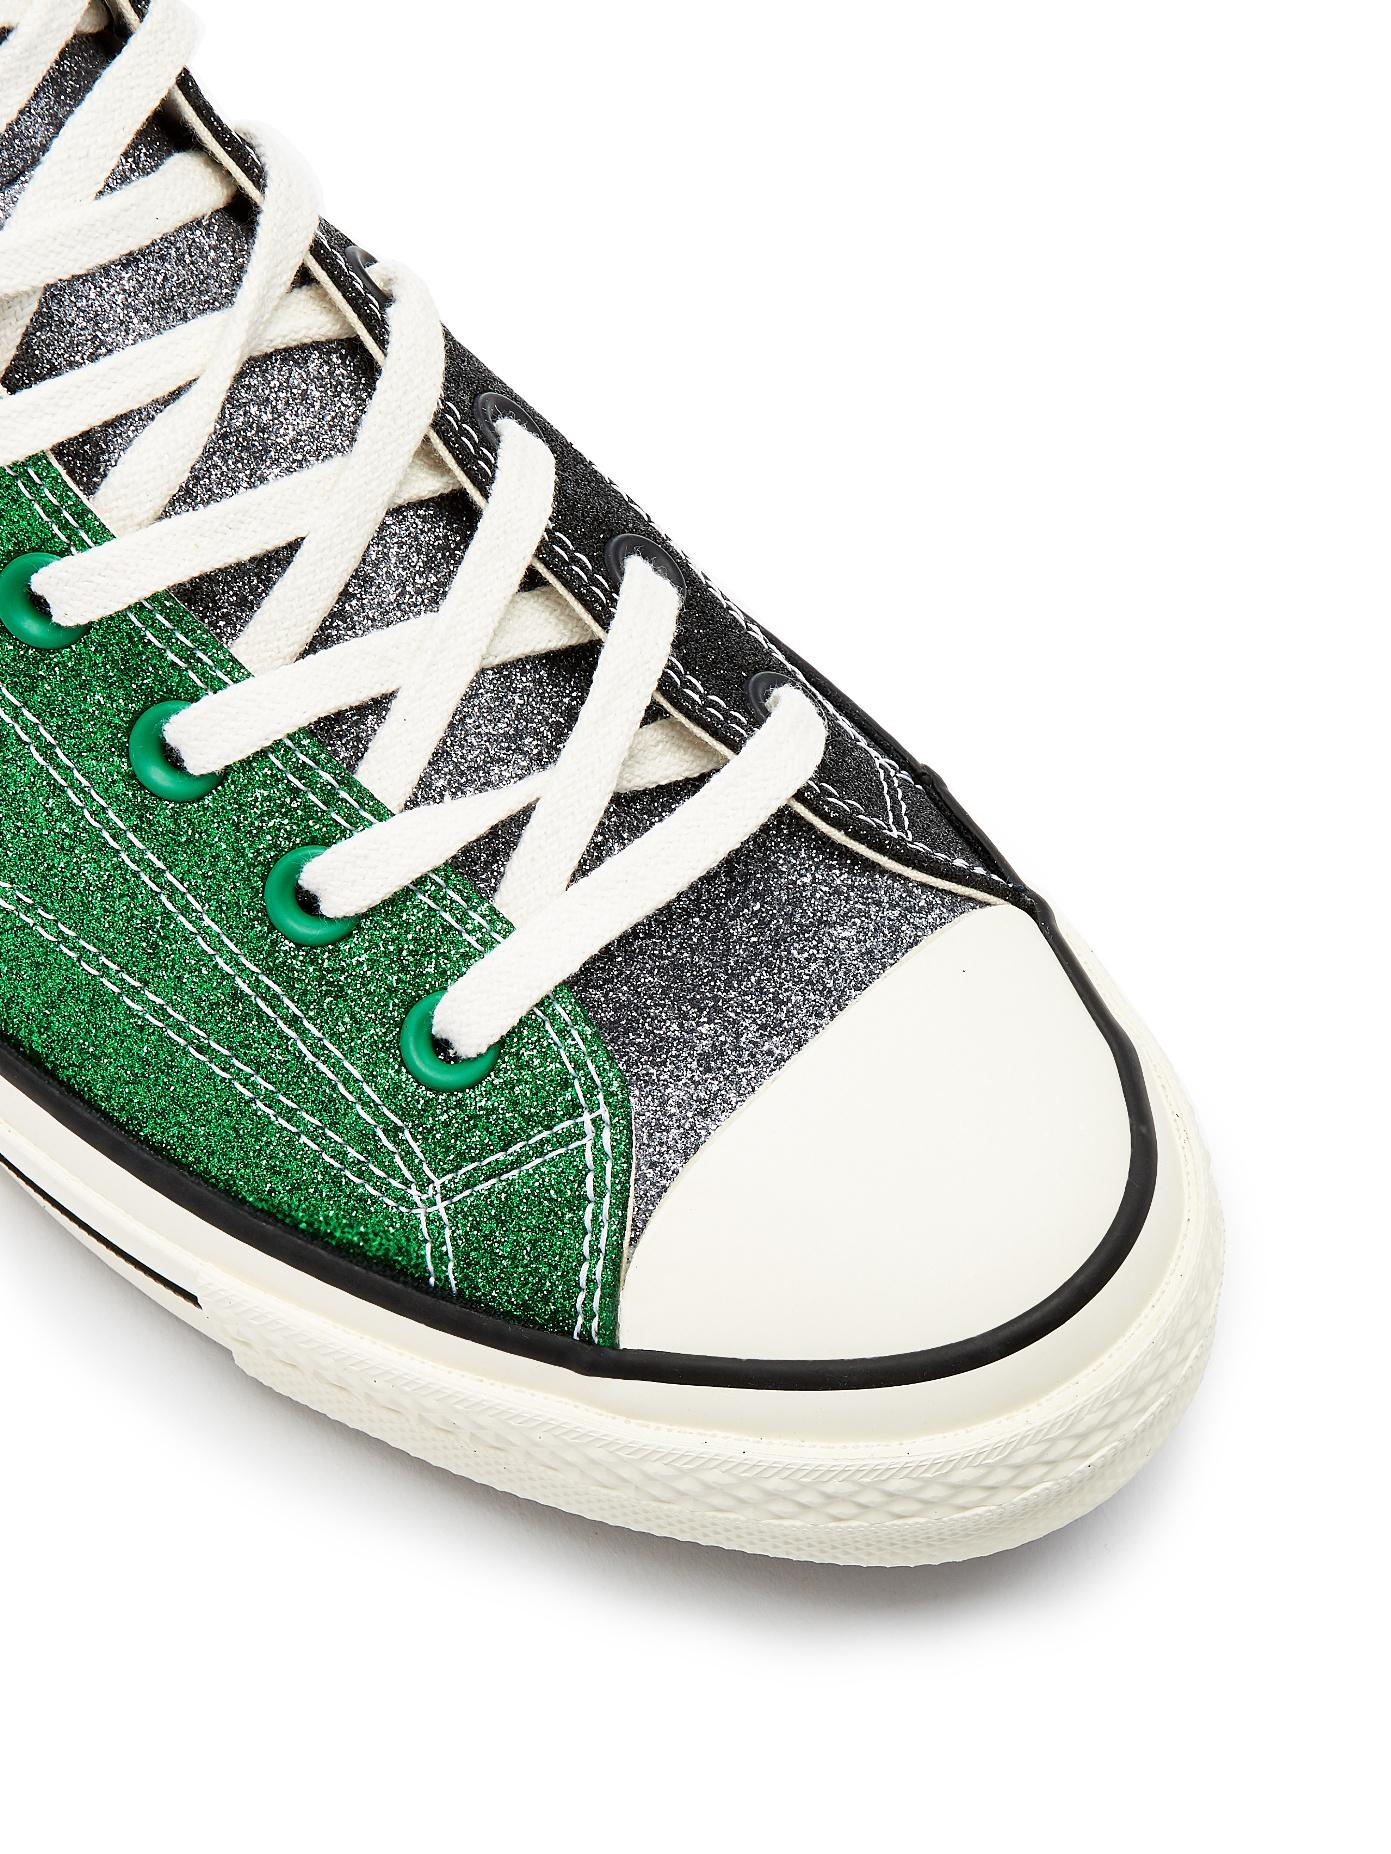 8adc62f3054 Lyst - Converse X Jw Anderson Glitter High-top Trainers in Green for Men